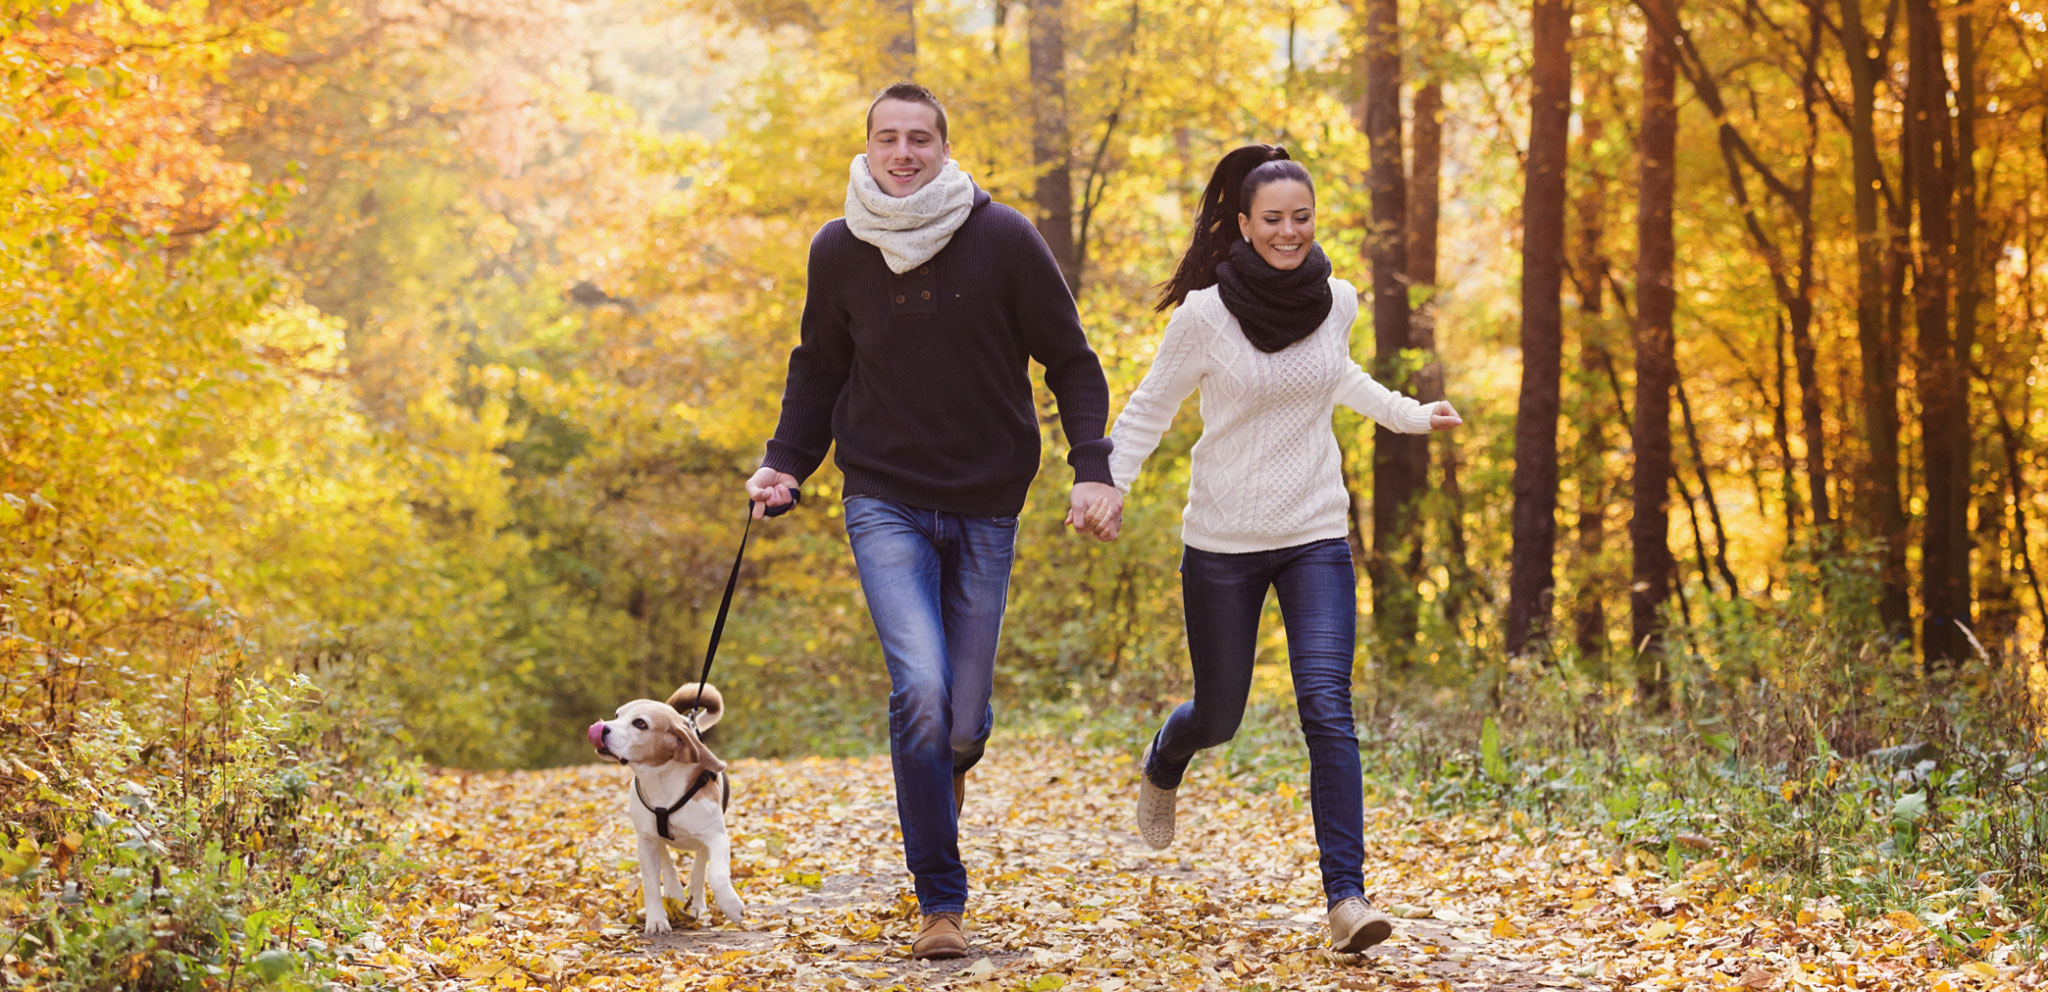 Fall Activities that Are Easy on Your Joints, Try These Joint-Friendly Outdoor Fall Activities